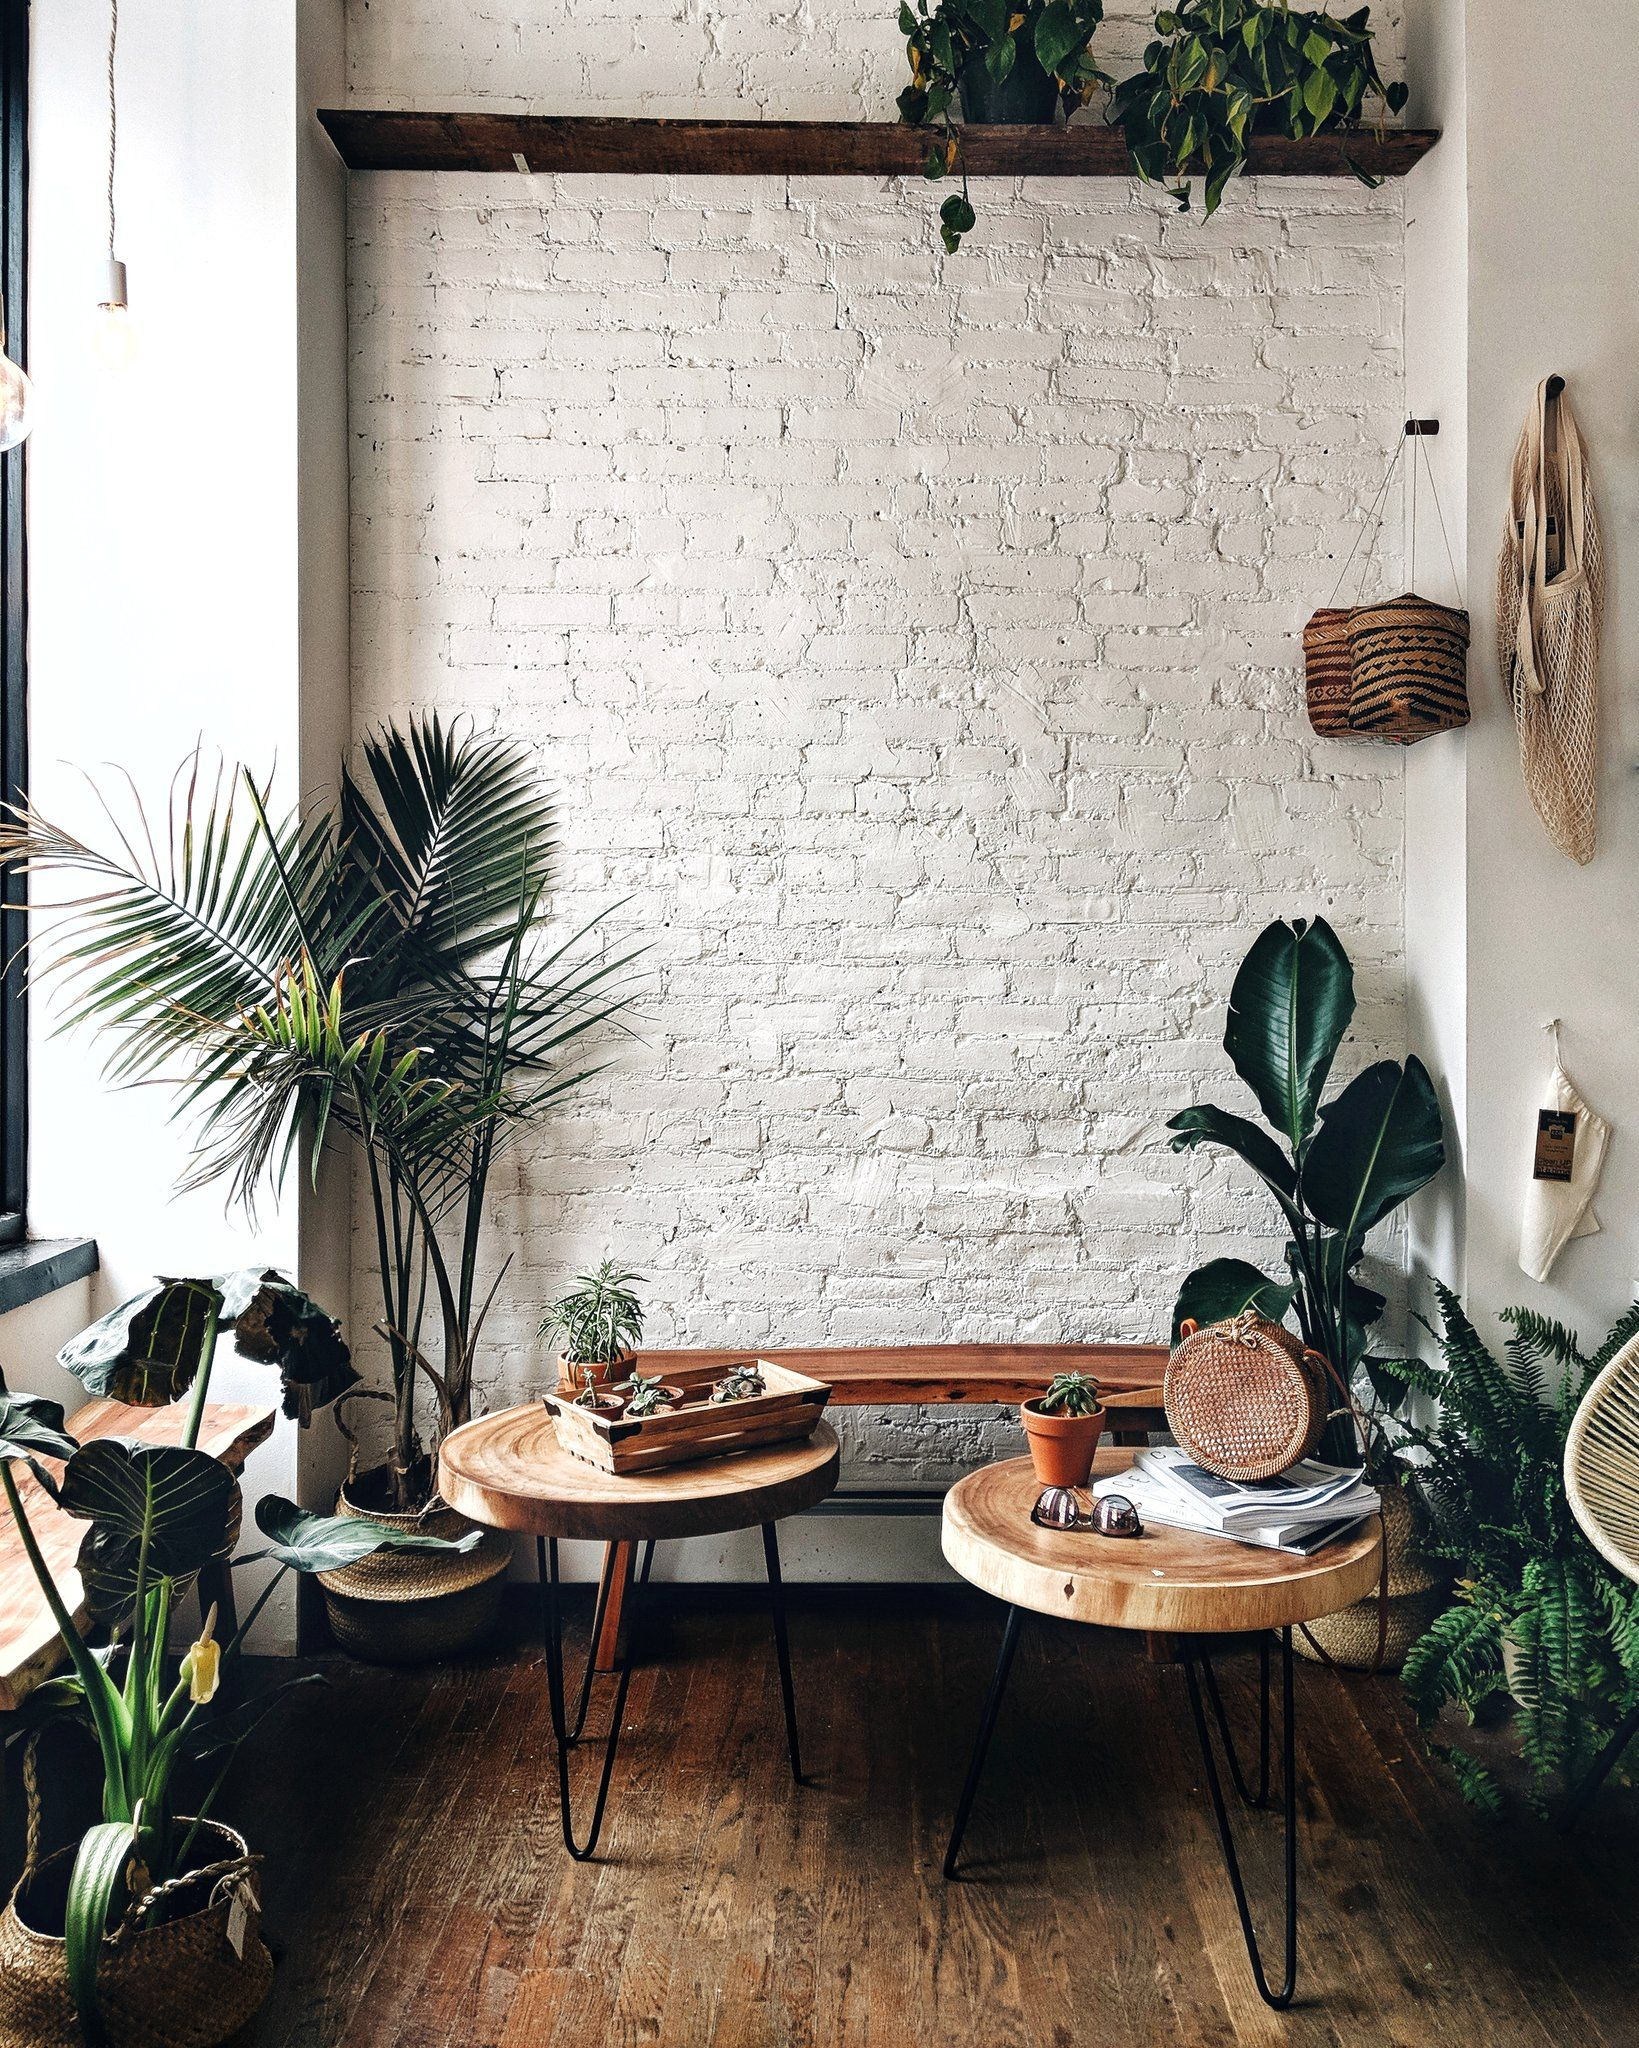 Pin By надежда рой On зал Brick Wall Living Room Brick Interior Wall White Brick Wall Living Room